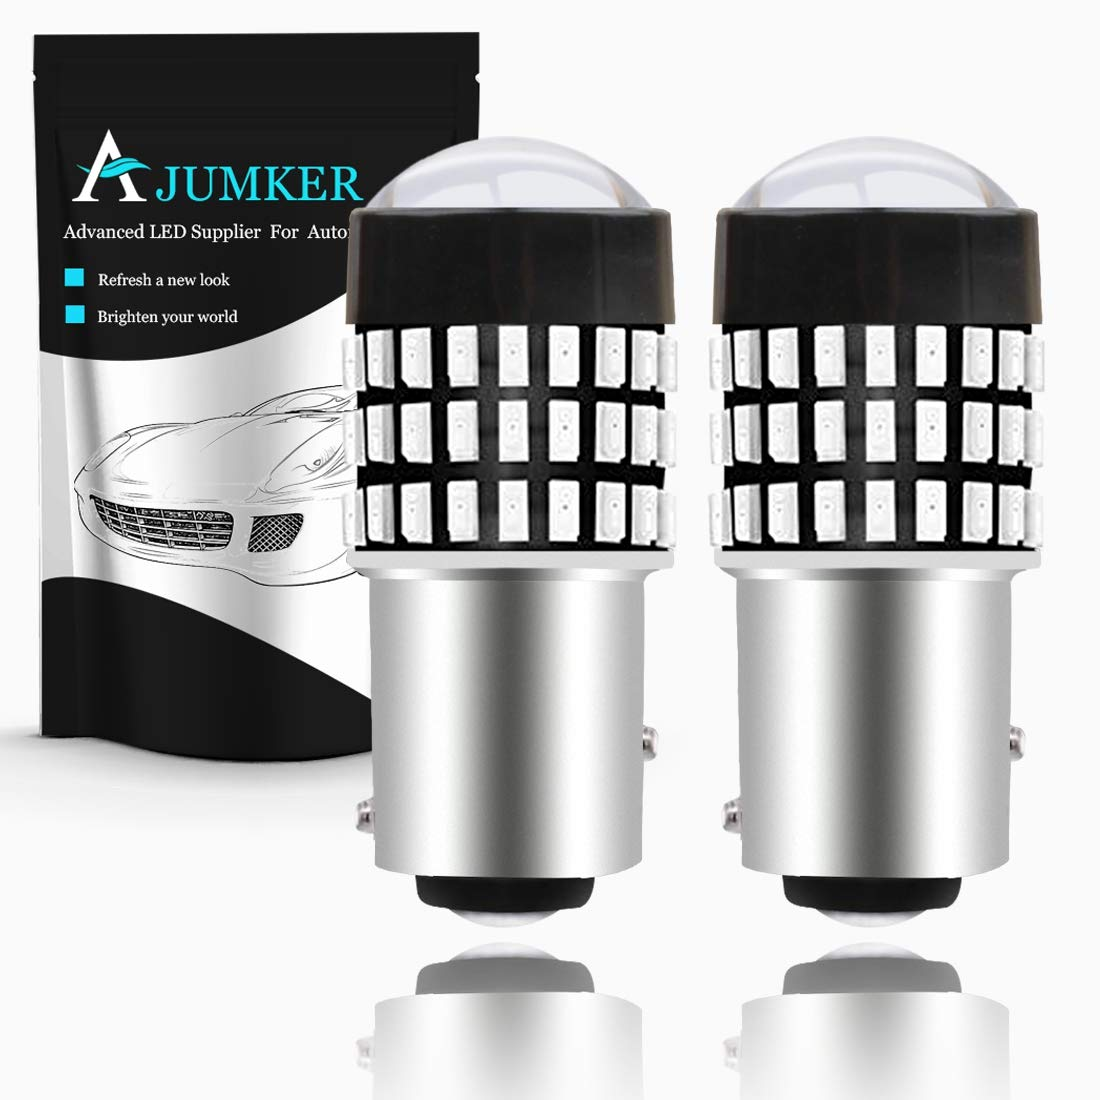 AJUMKER 1157 BAY15D 2057 2357 7528 LED Bulb Red Extremely Bright 1800LM 3014 78-SMD with Projector Lens,12-24V,Work as Back Up Reverse Lights, Brake Tail Lights, Turn Signal Blinkers (Pack of 2)